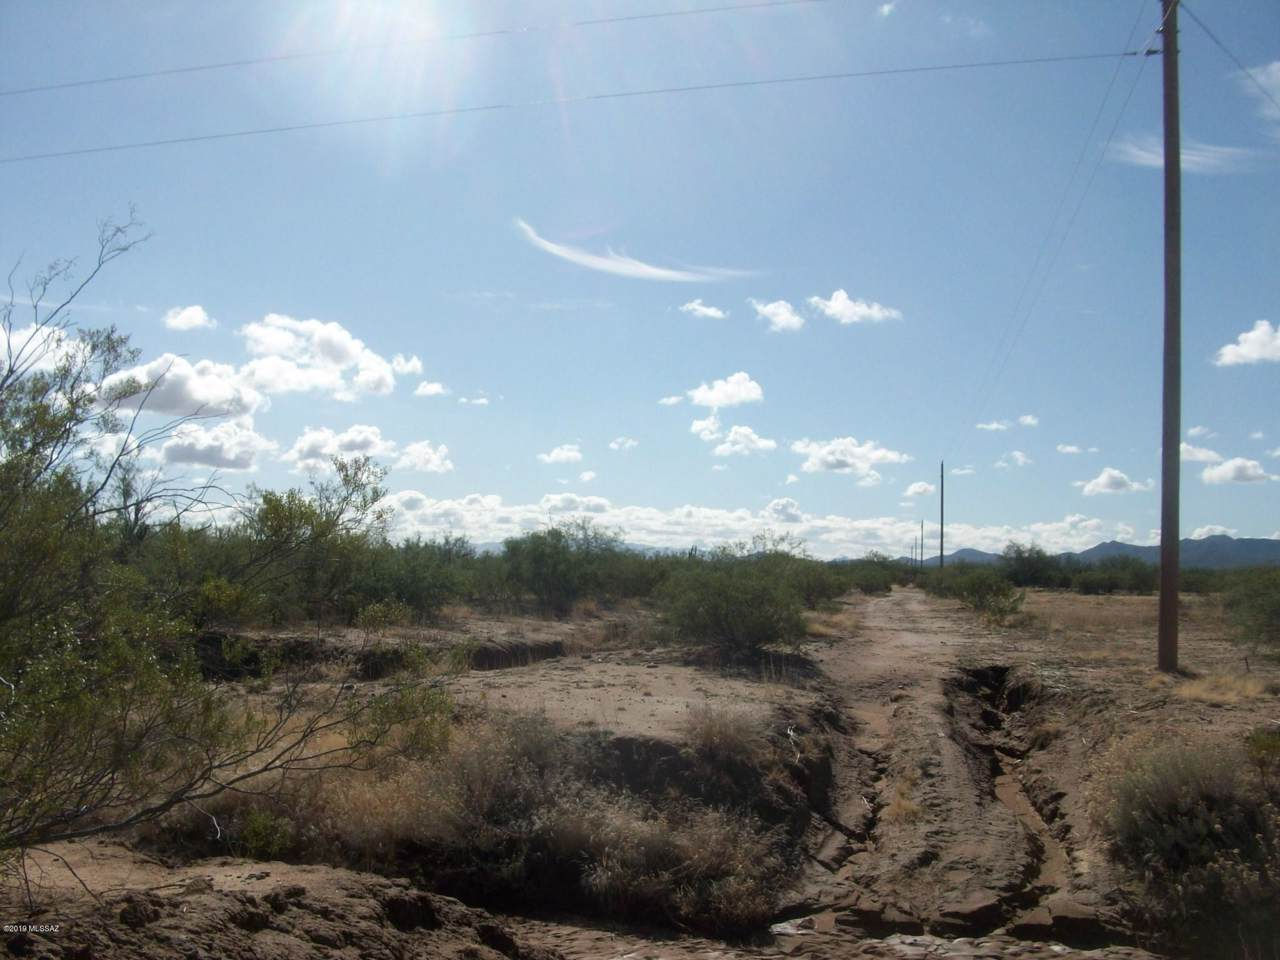 https://bt-photos.global.ssl.fastly.net/tucson/1280_boomver_1_21930336-2.jpg